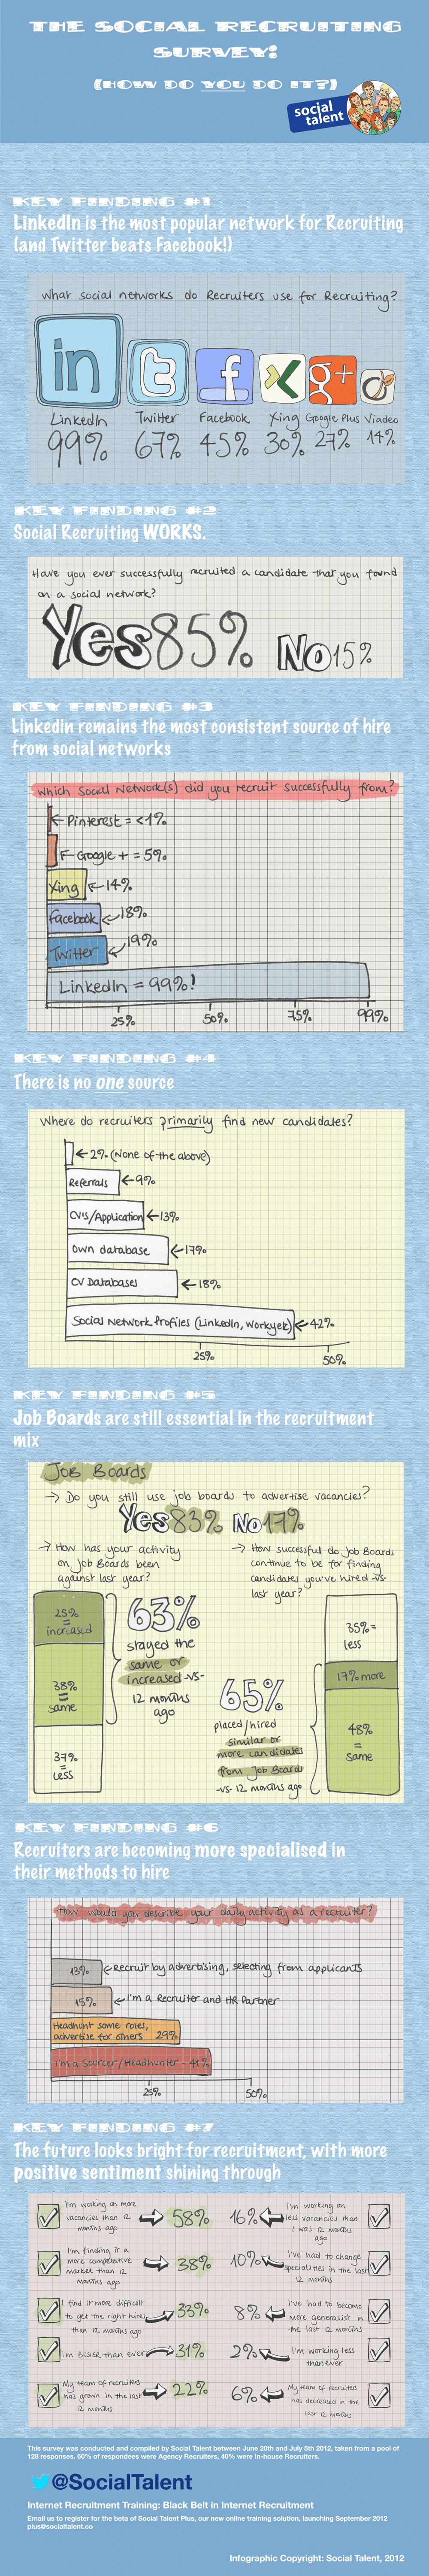 social-survey-online-recruiters-infographic